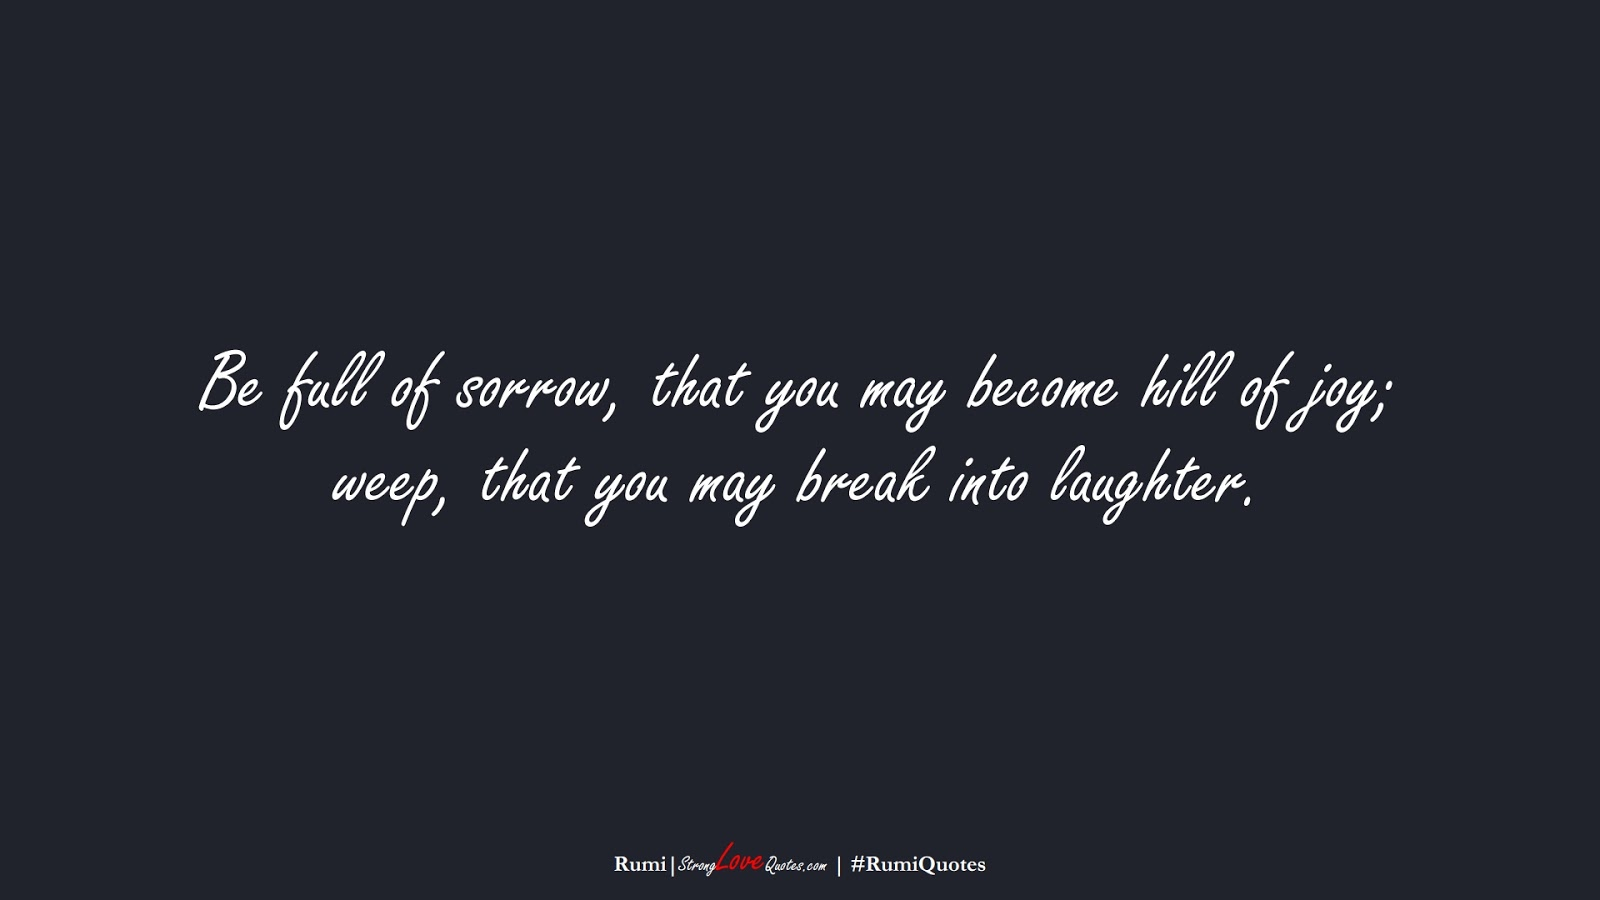 Be full of sorrow, that you may become hill of joy; weep, that you may break into laughter. (Rumi);  #RumiQuotes